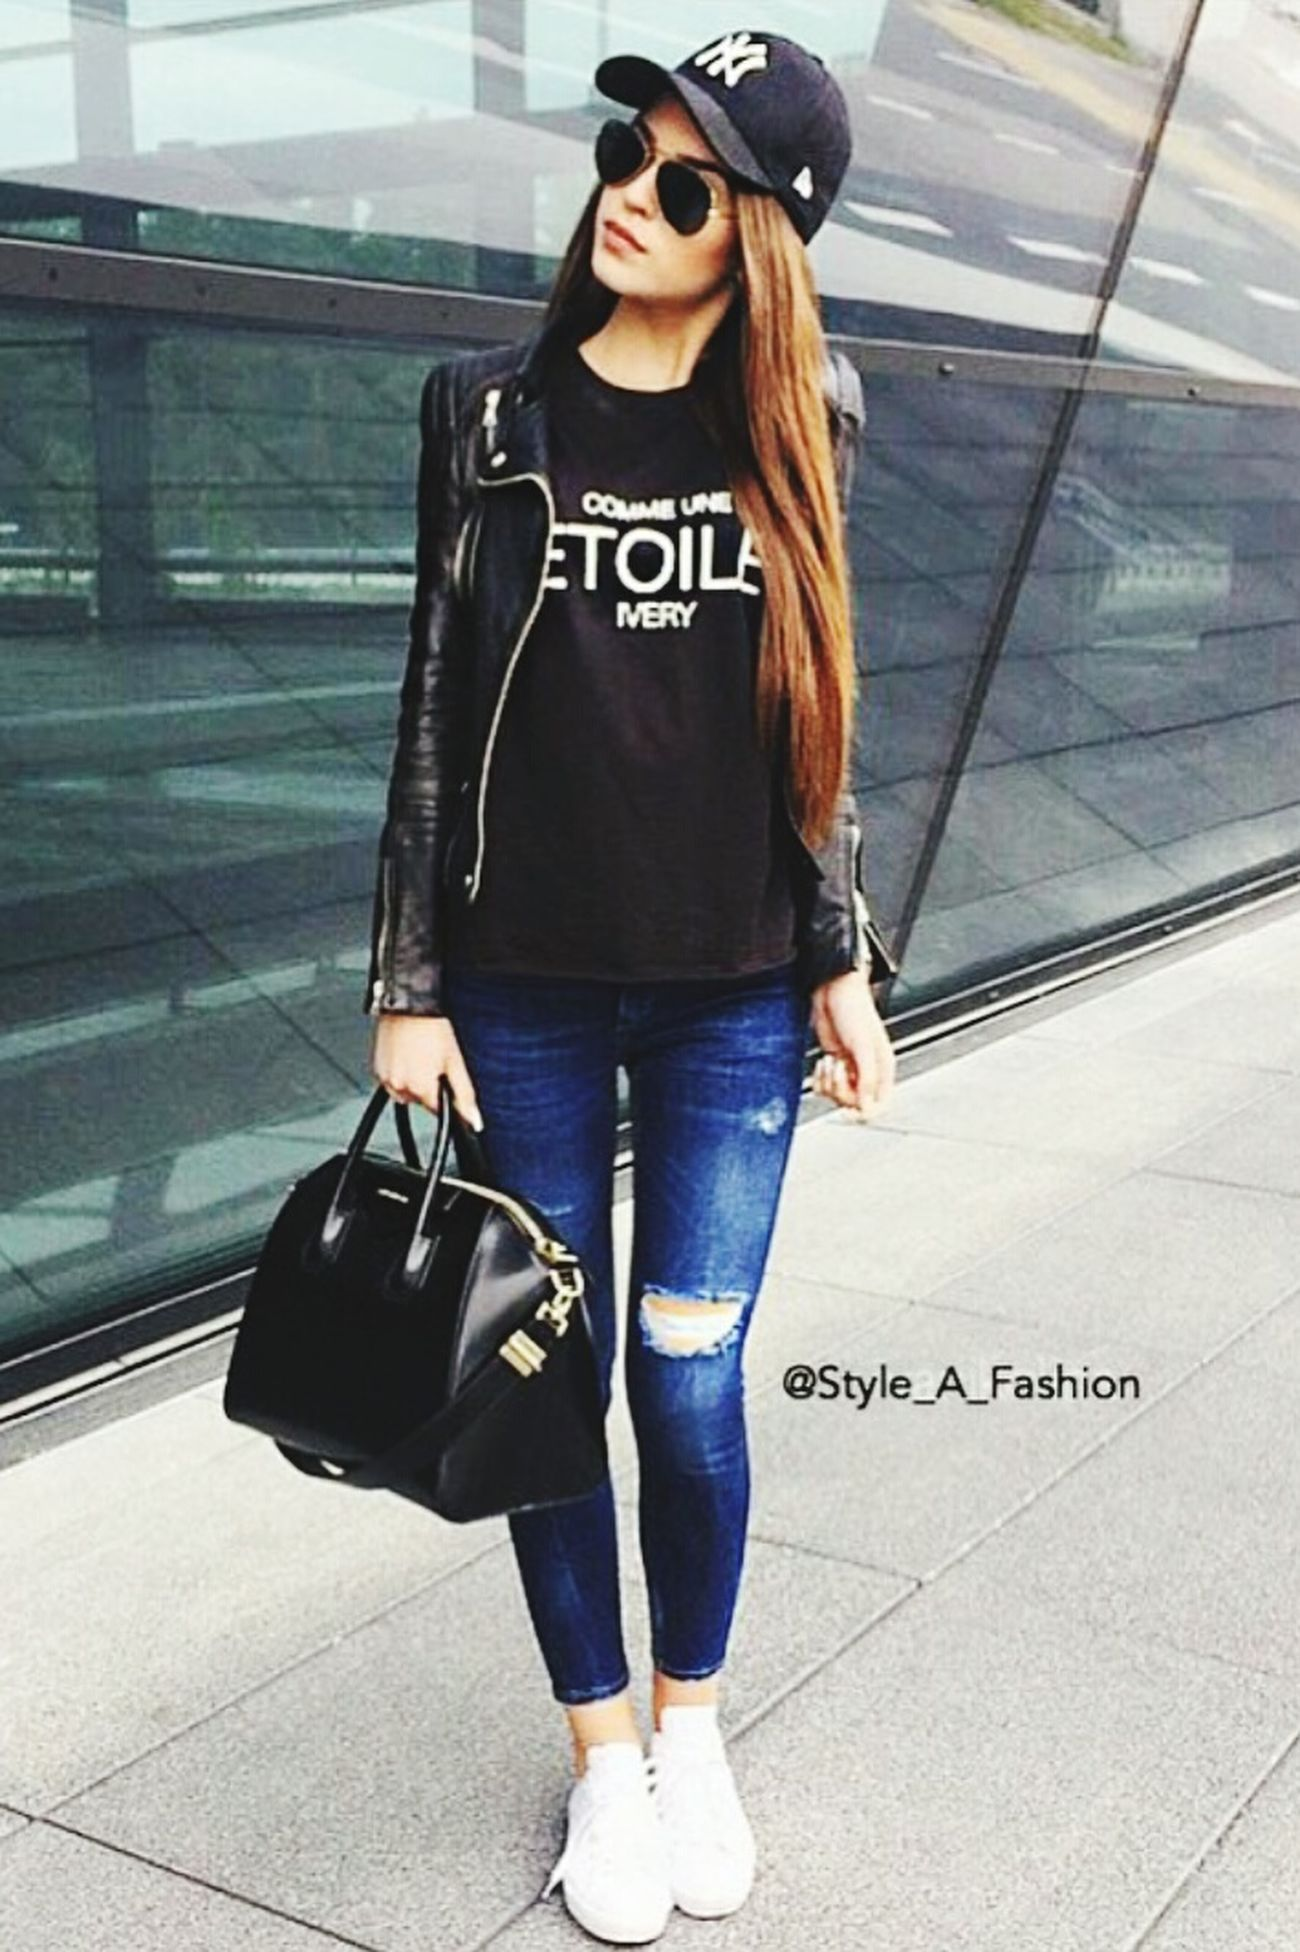 Sunclasses Longhair Cap Jeans Lederjacke Girl Beautiful Amazing Jealous